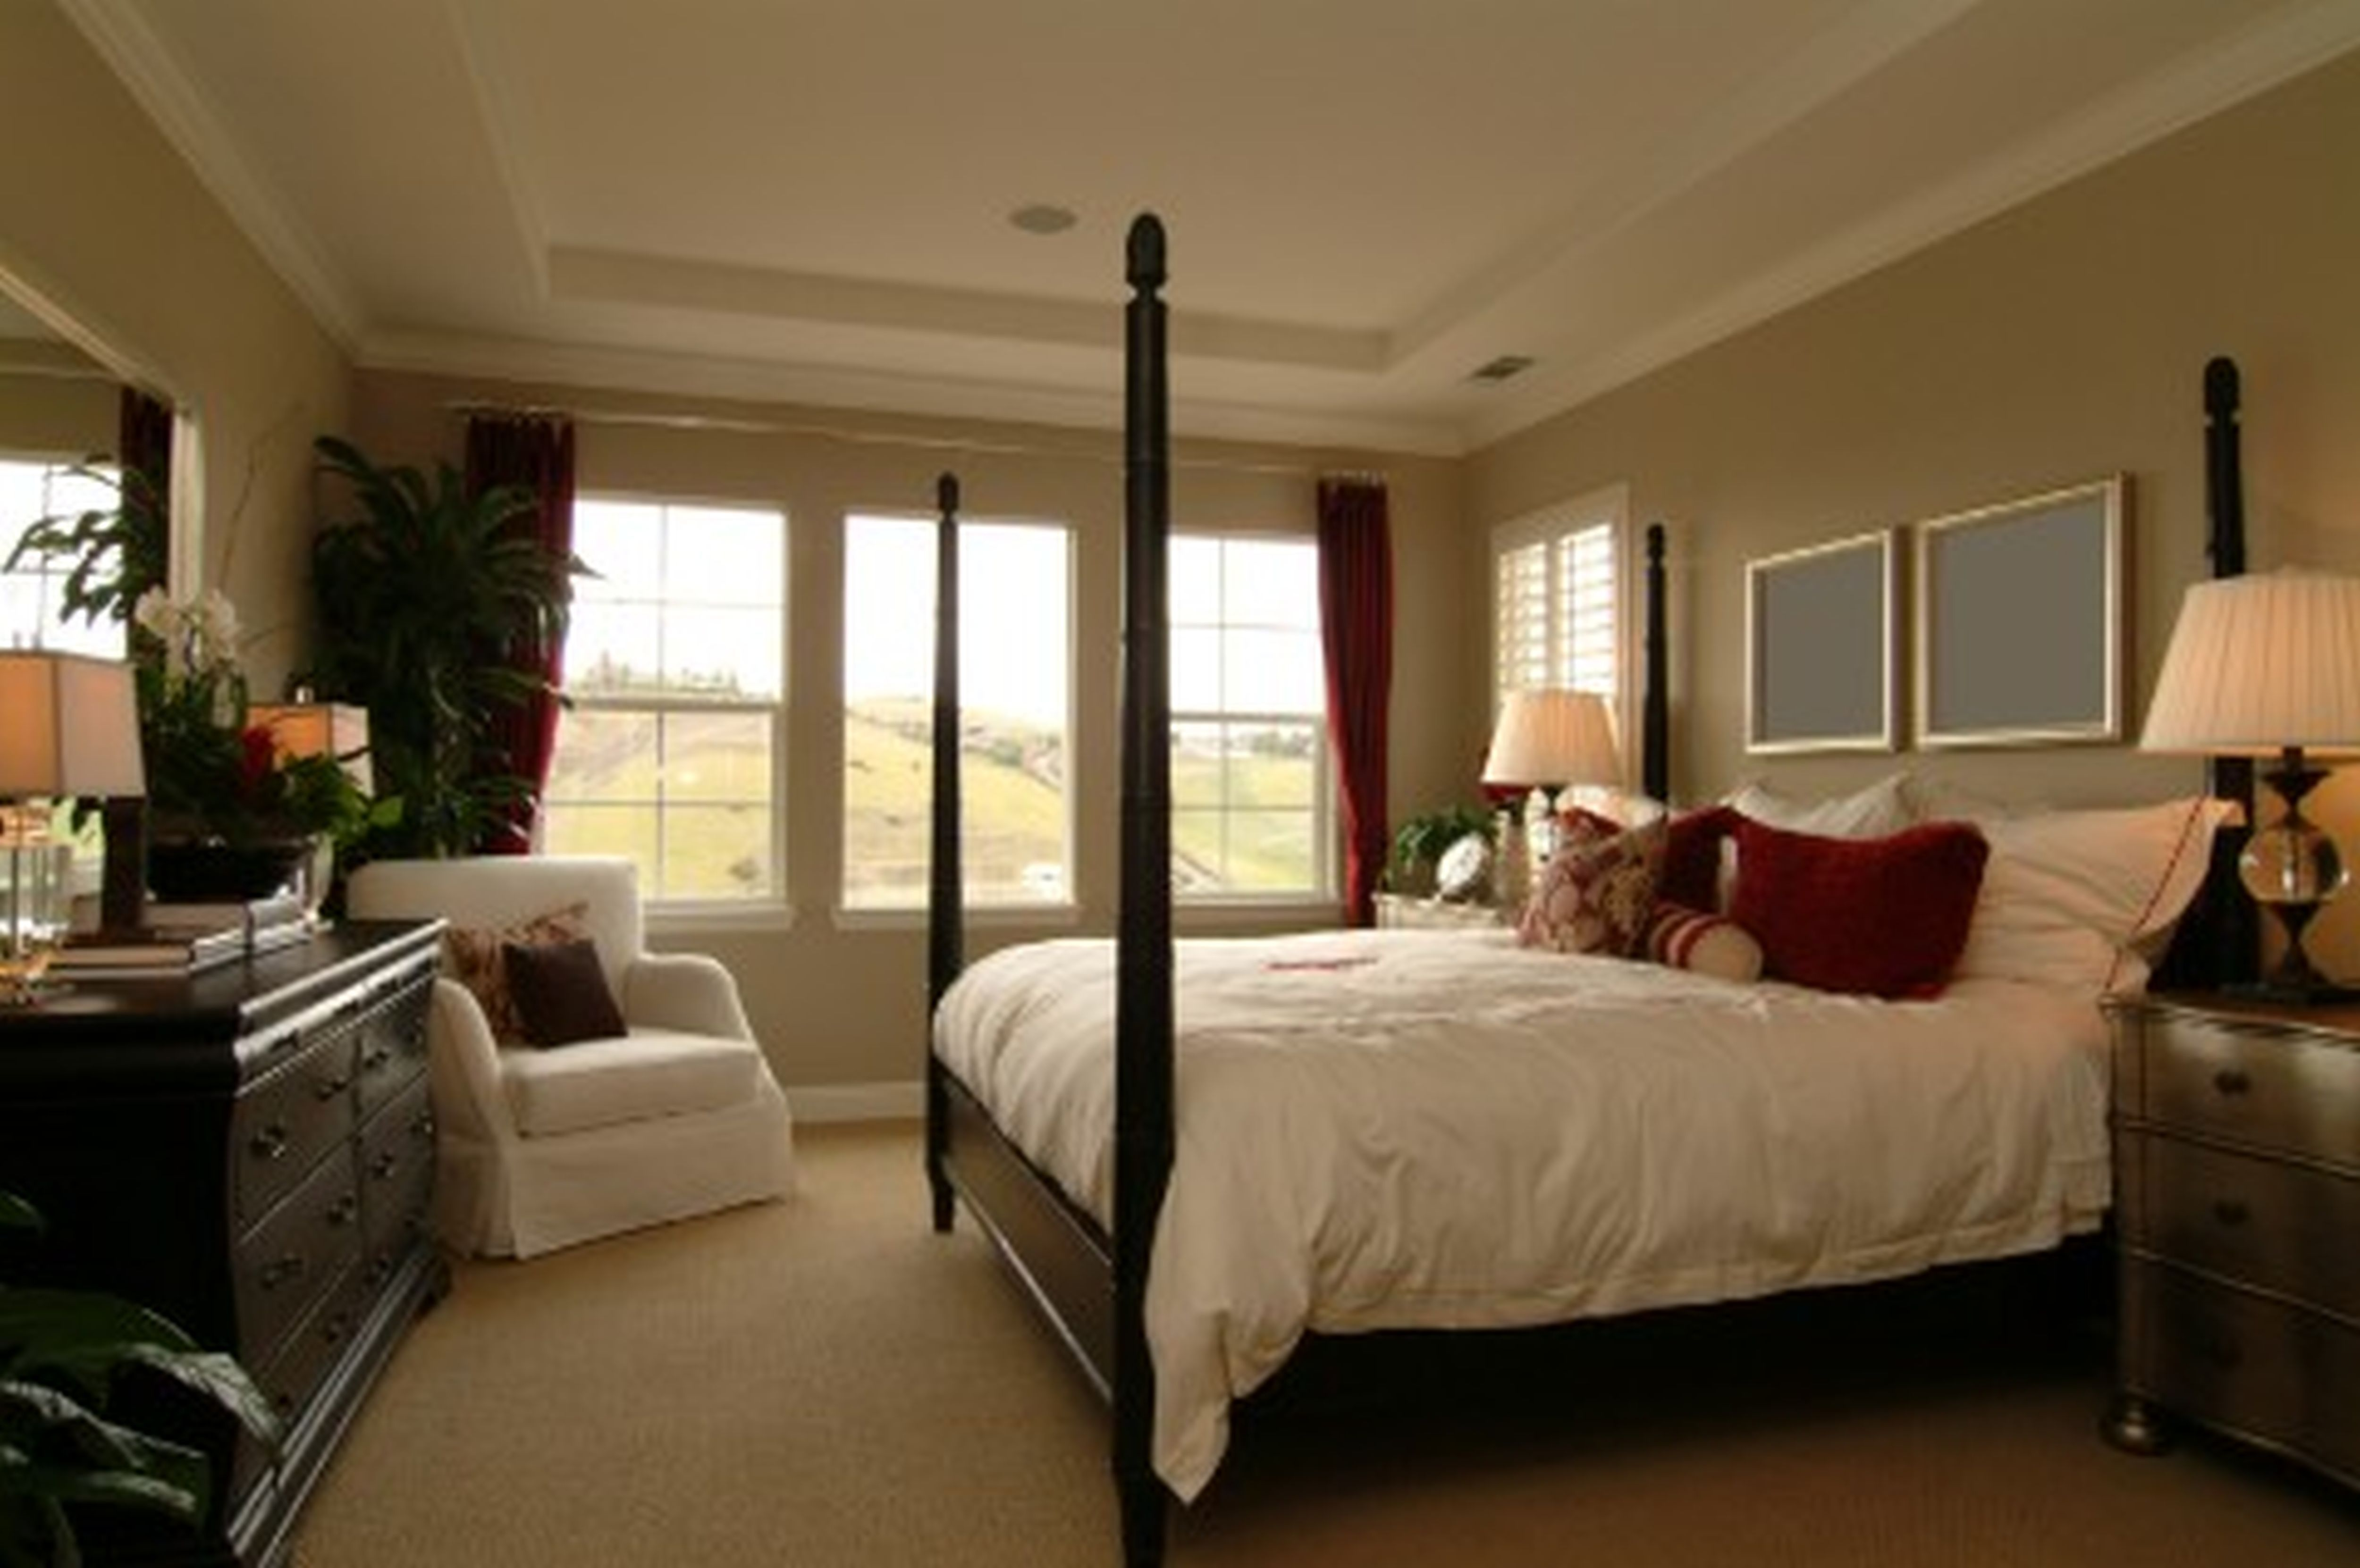 Charming These Master Bedroom Decorating Ideas Are Fair A Few Of The Many Aspects Ofu2026 Ideas